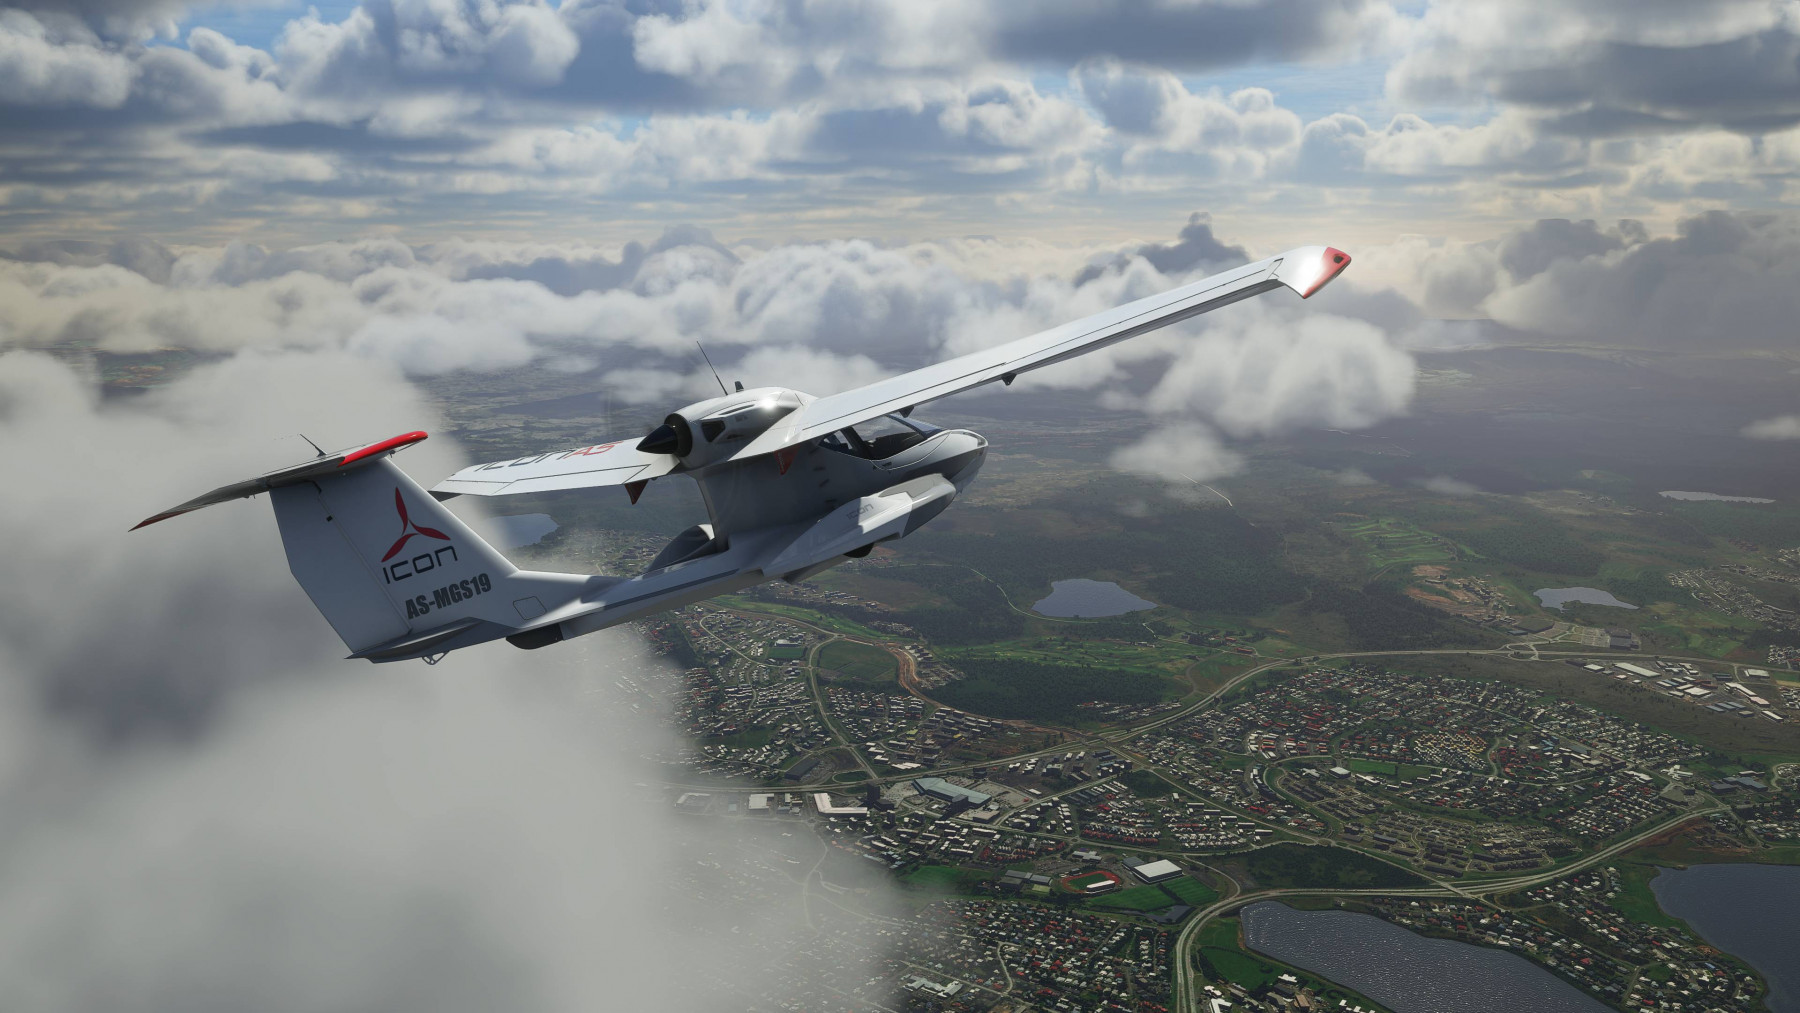 Microsoft Flight Simulator in VR on Quest 2 – improving image quality while retaining a smooth experience.